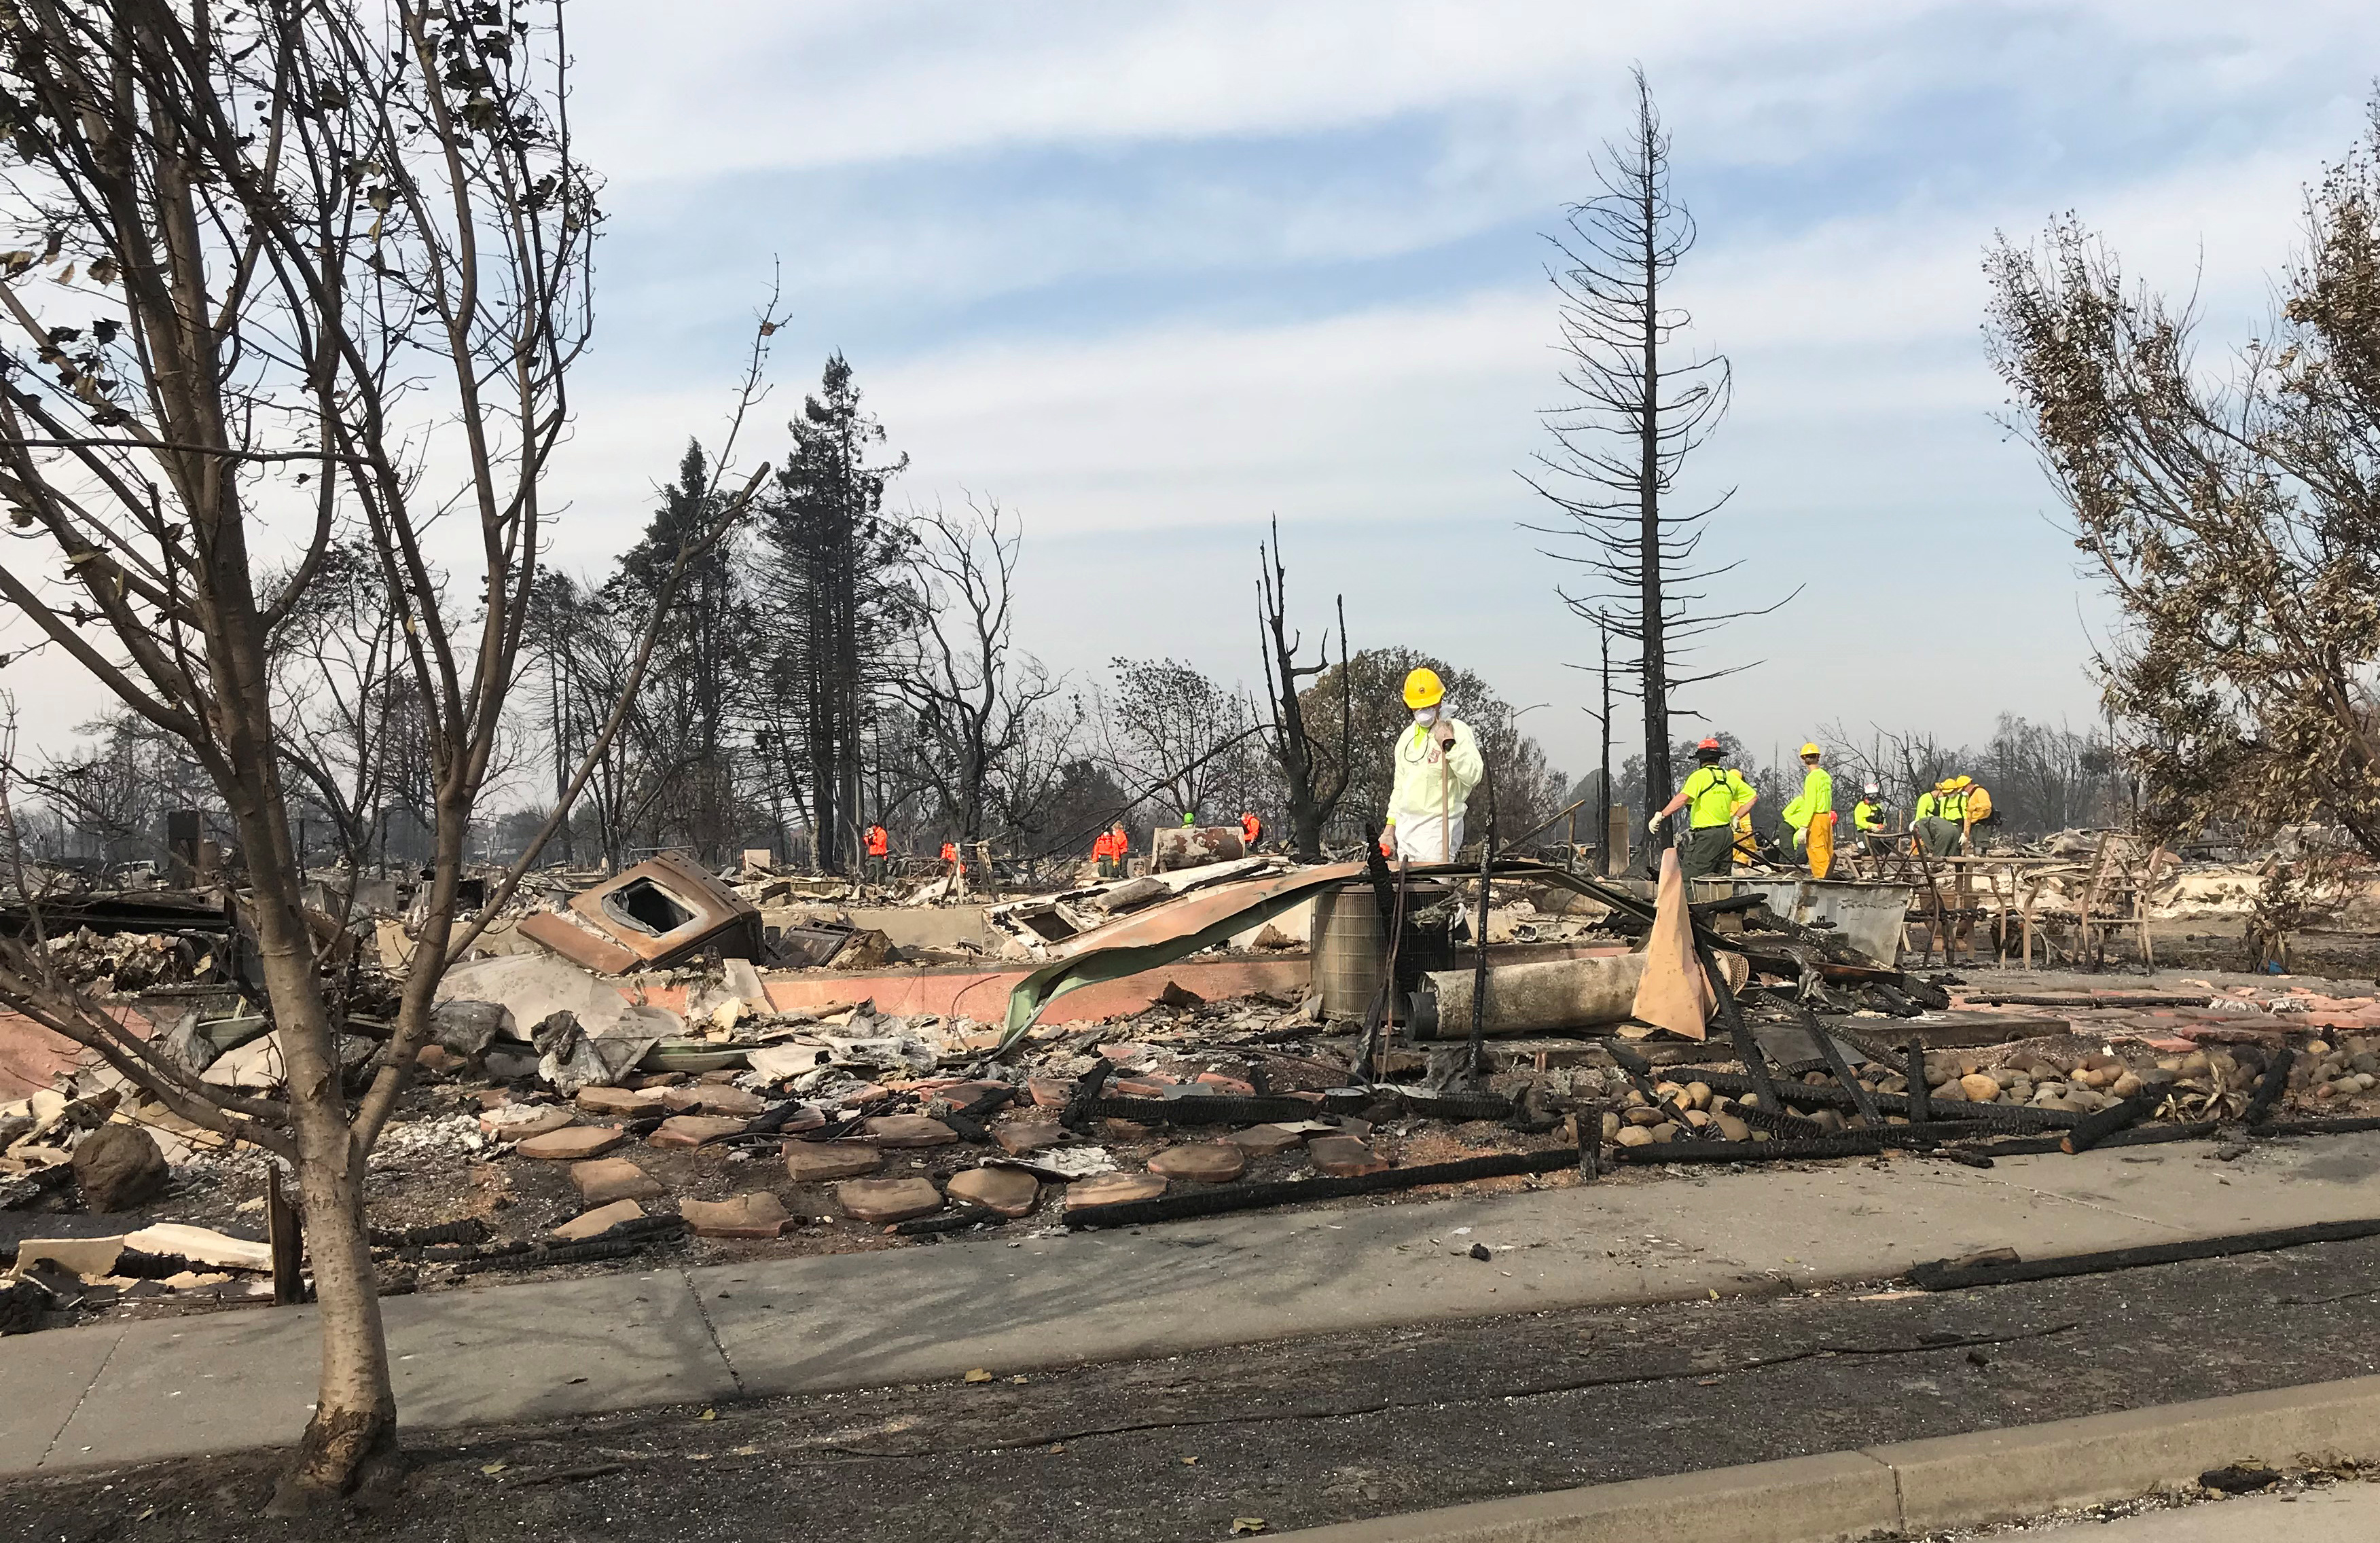 Search-and-rescue teams comb through the Coffey Park area looking for dozens of people still missing in the state's deadliest wildfires, in Santa Rosa, California